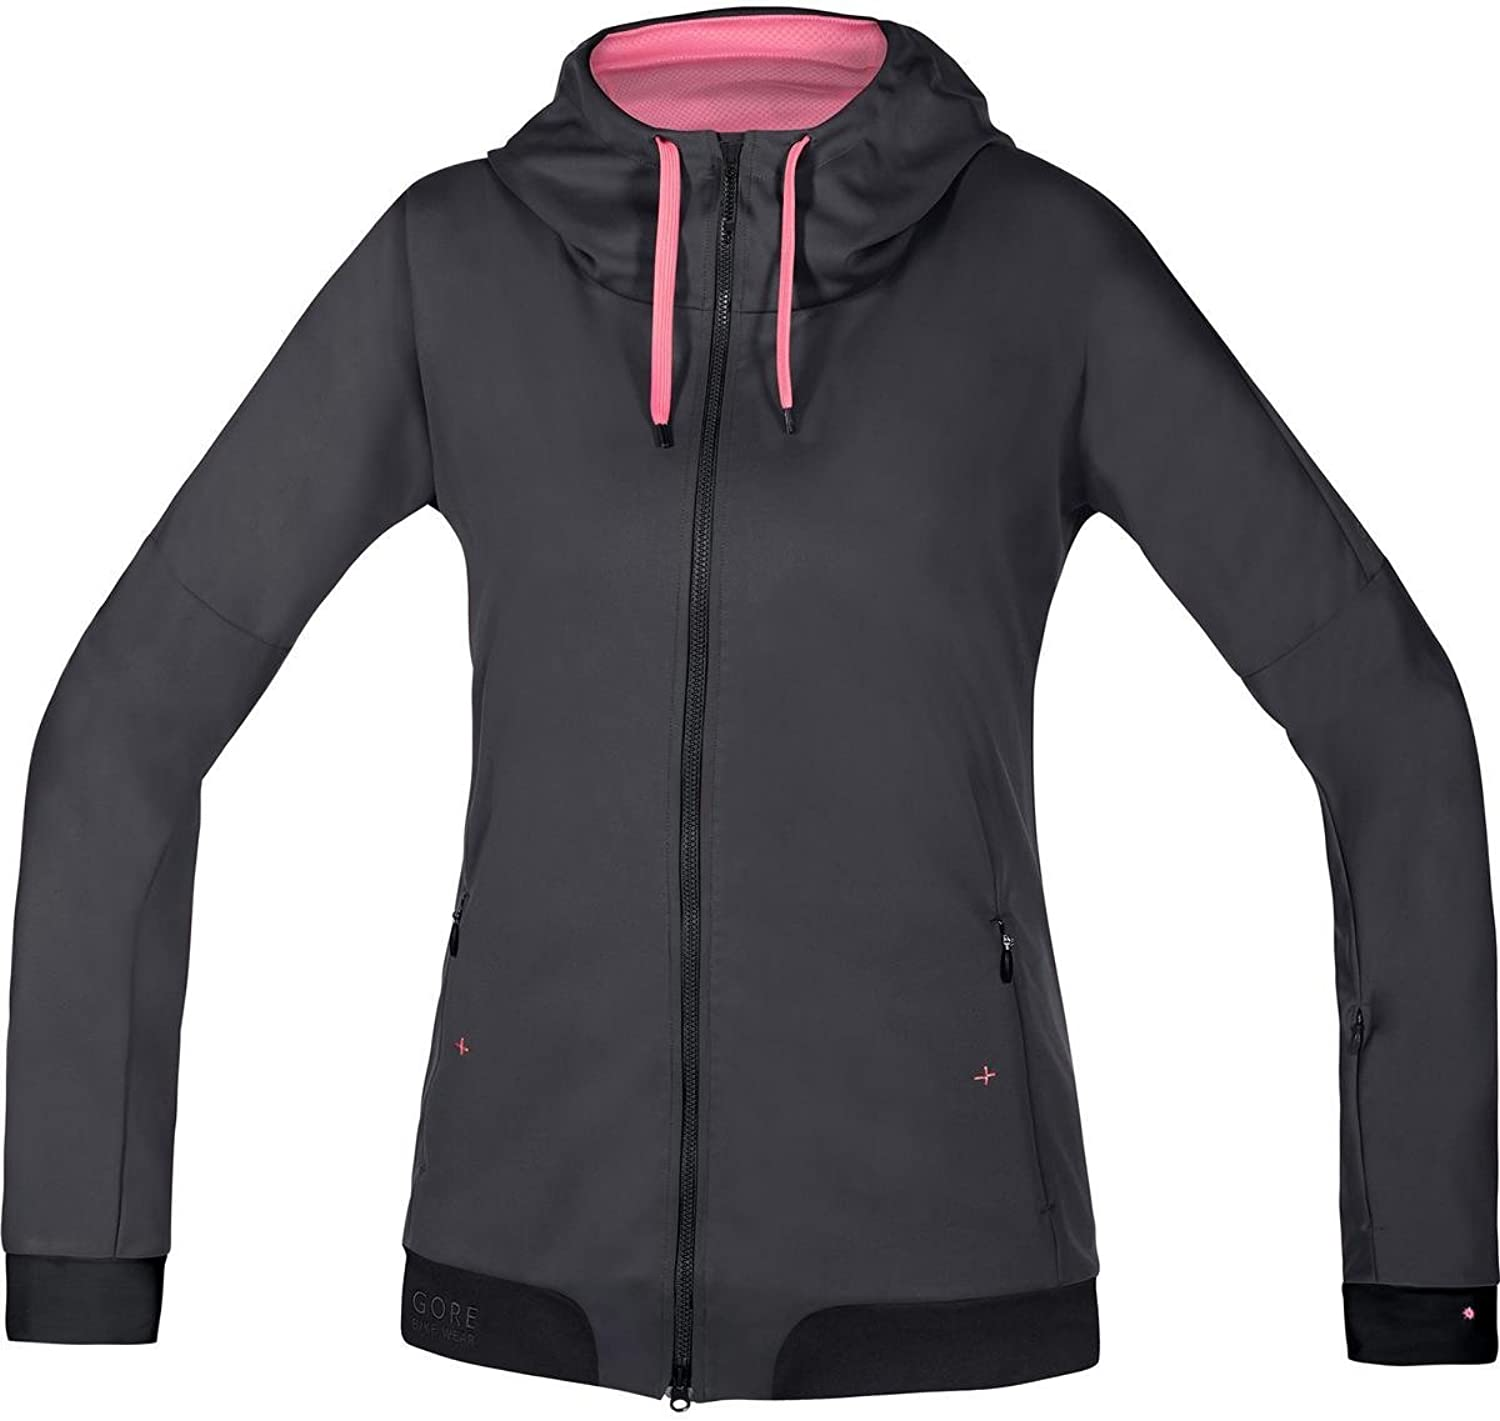 Gore Bike WEAR Women's Warm Soft Shell Hooded Mountainbike Jacket, Gore Windstopper, PowerTrail Lady WS SO Hoody, Size 38, Jazzy Pink Giro Pink, SWHFLO